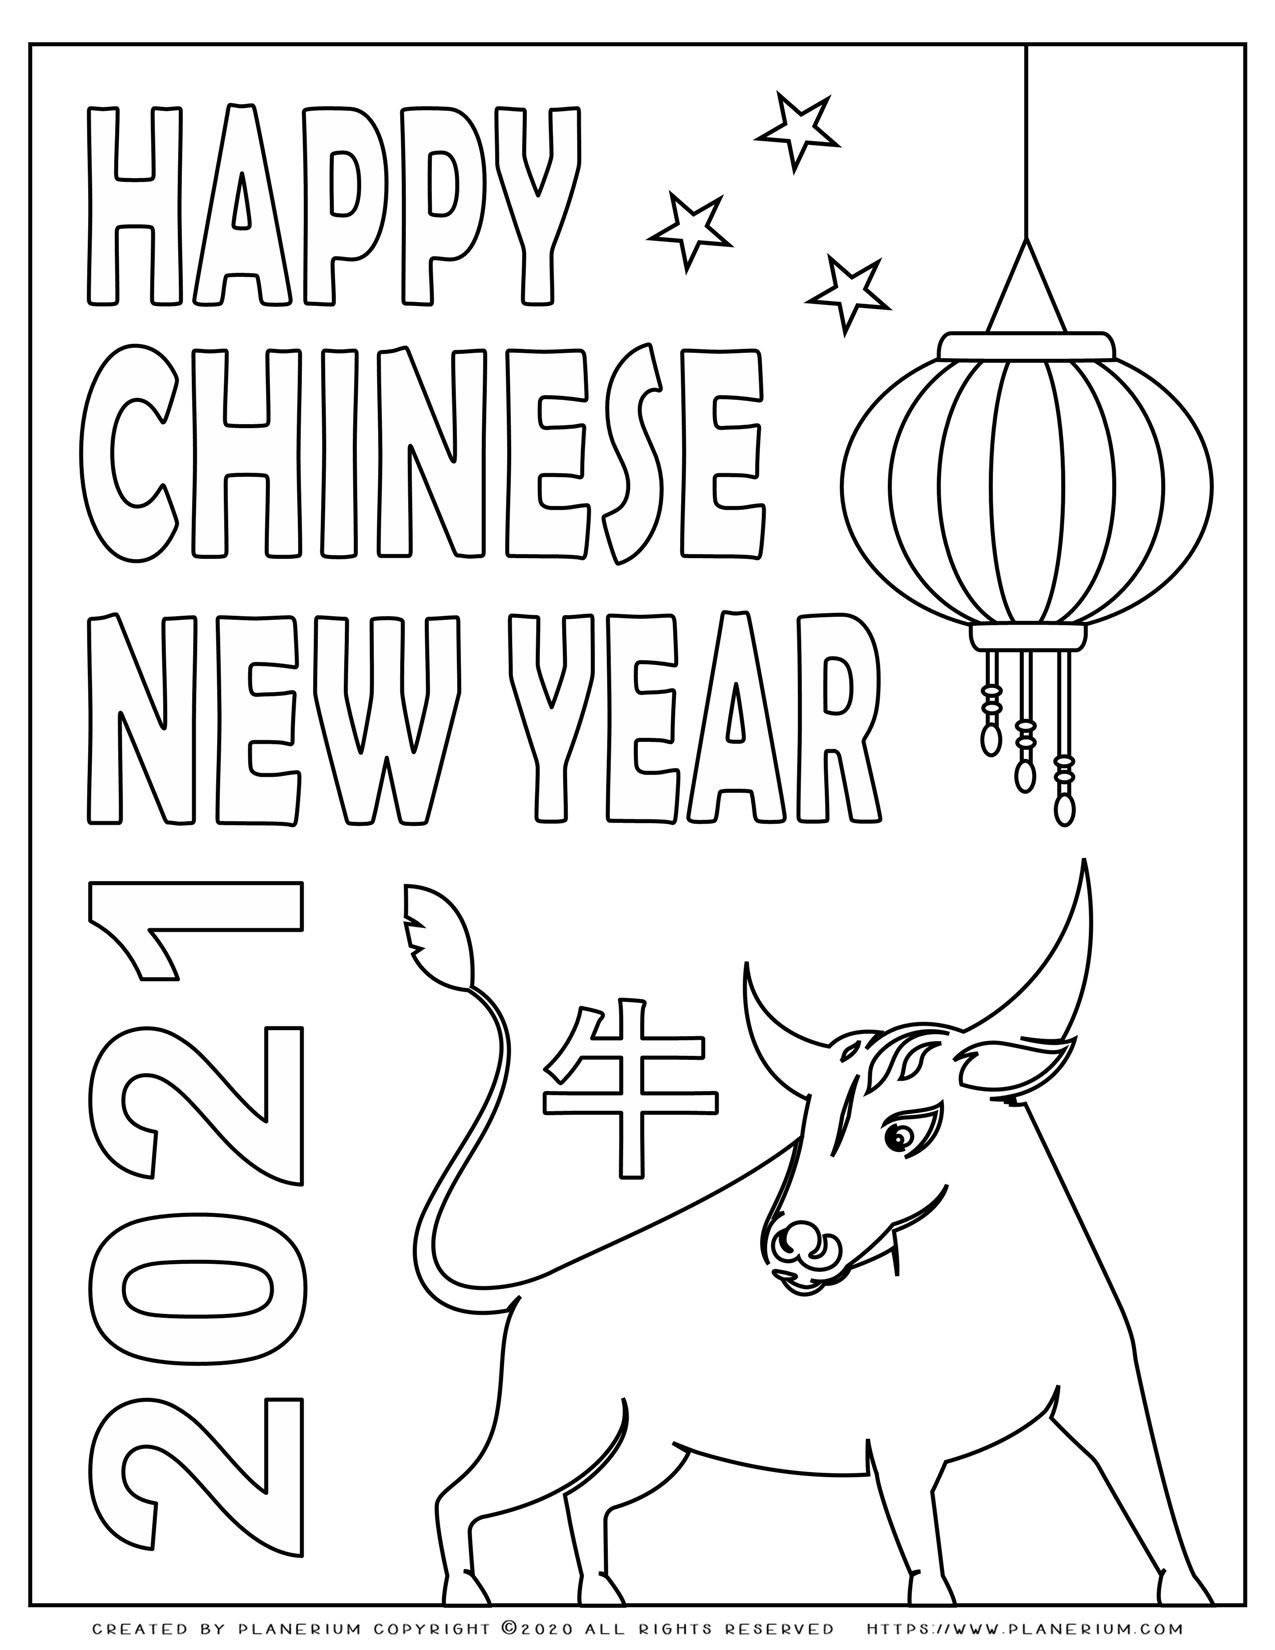 Happy Chinese New Year Ox 2021 Free Coloring Page Planerium In 2020 Happy Chinese New Year Coloring Pages Free Coloring Pages